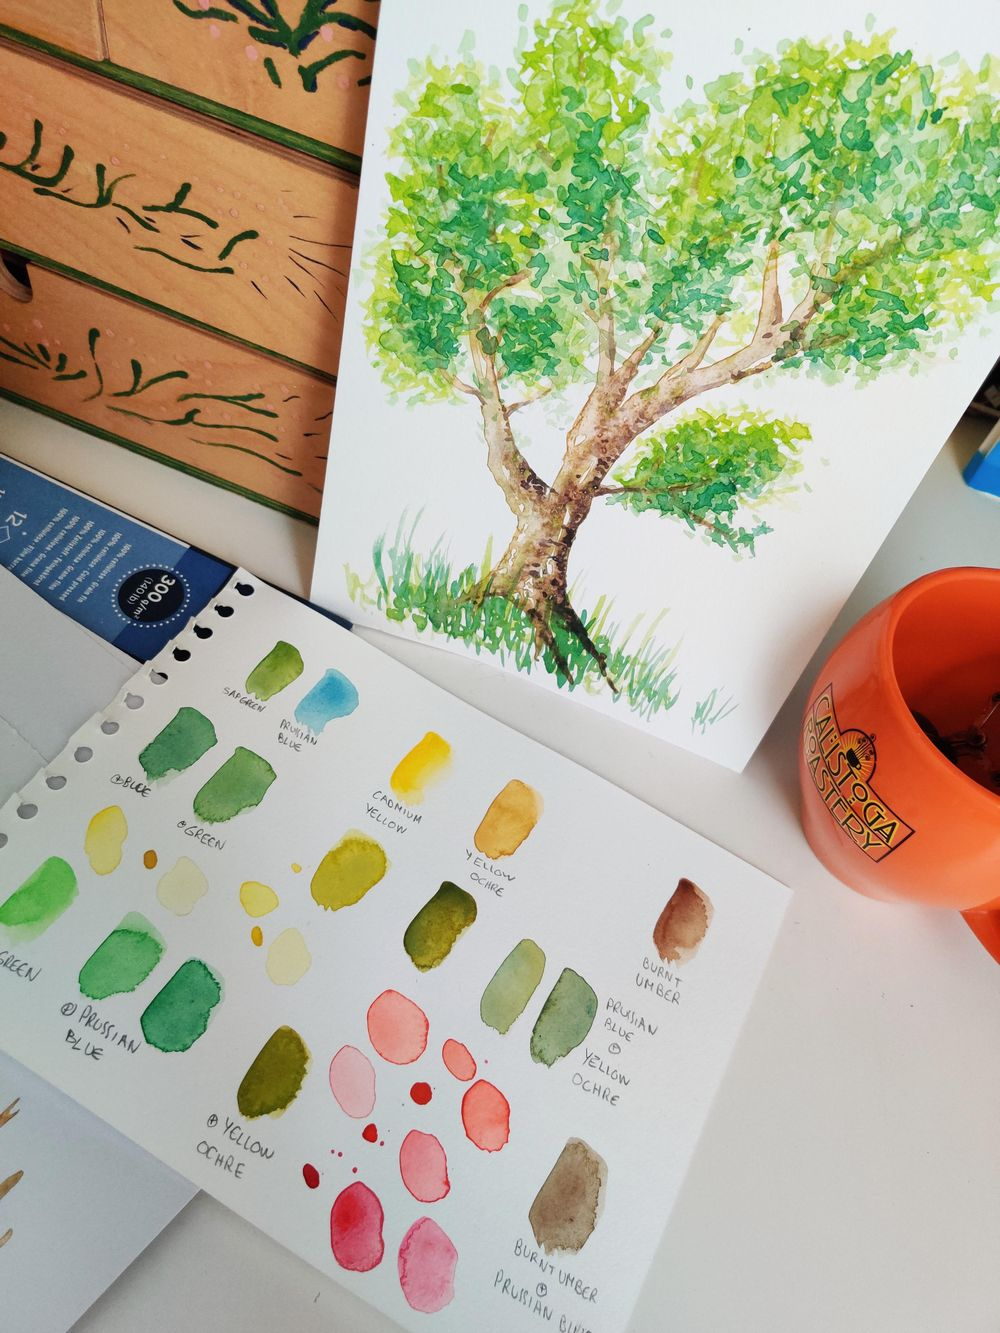 Practice tree : step by step - image 4 - student project